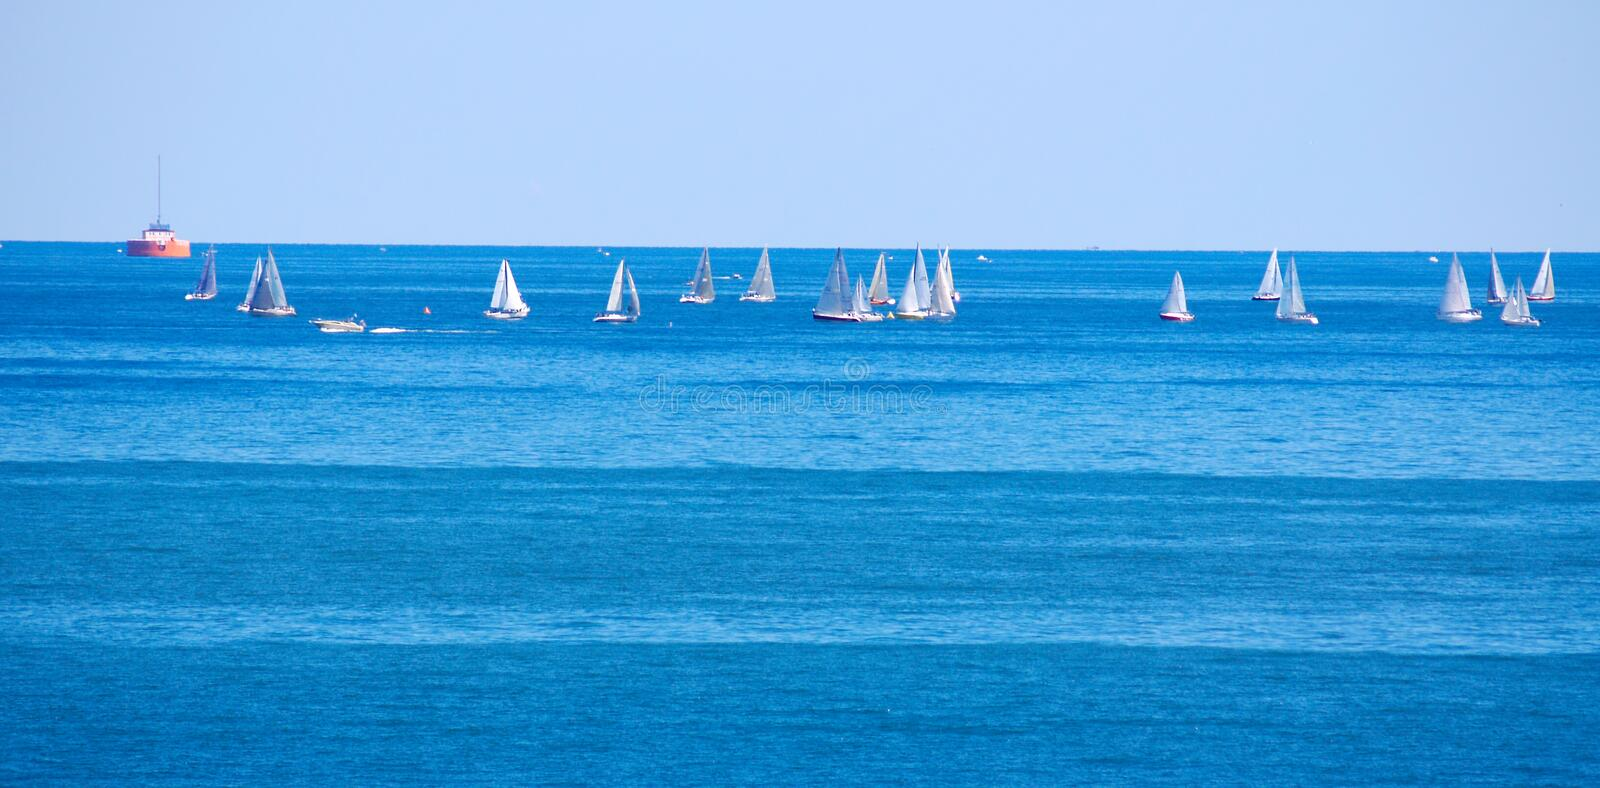 Competindo sailboats imagem de stock royalty free